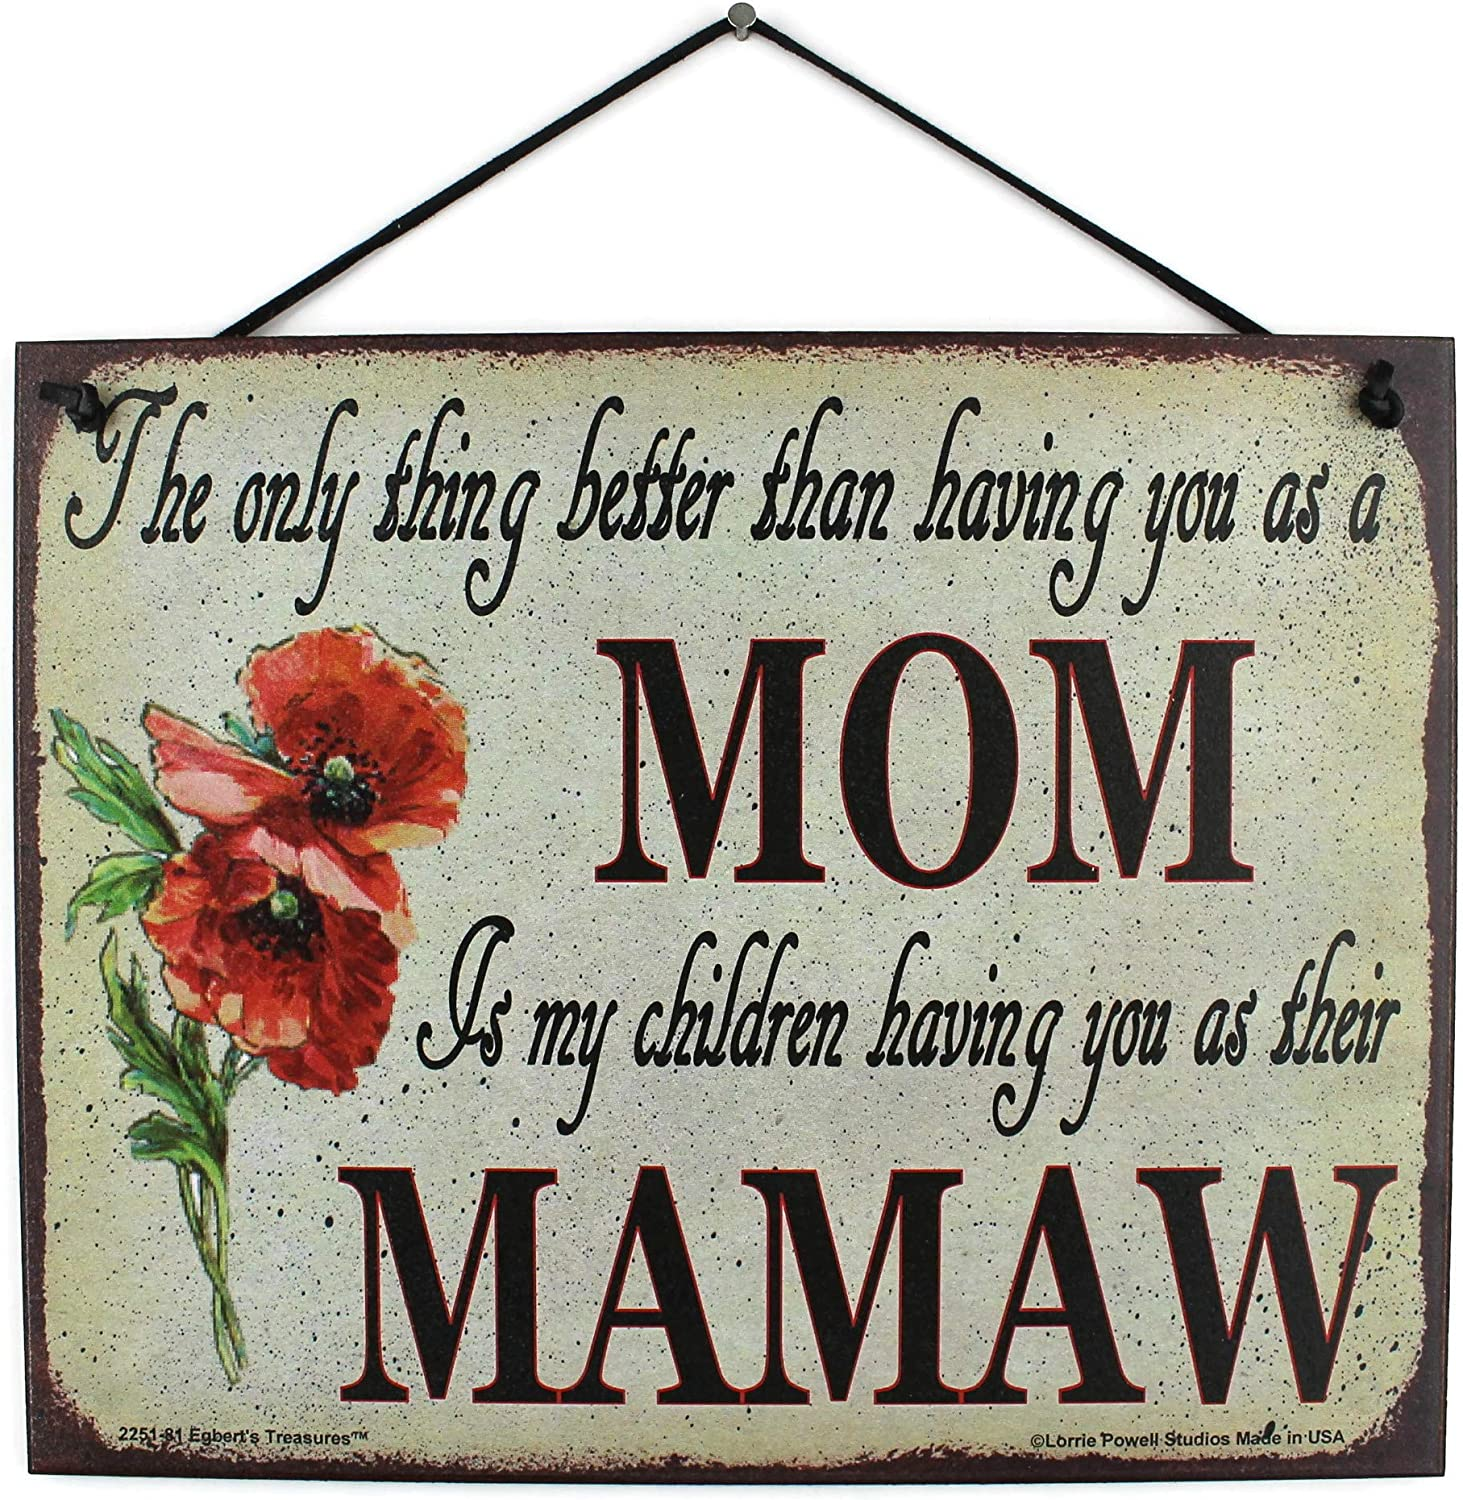 """8x10 Vintage Style Sign with Poppy Flower Saying, """"The only thing better than having you as a MOM is my children having you as their MAMAW"""" Decorative Fun Universal Grandma Nickname Signs (8x10)"""